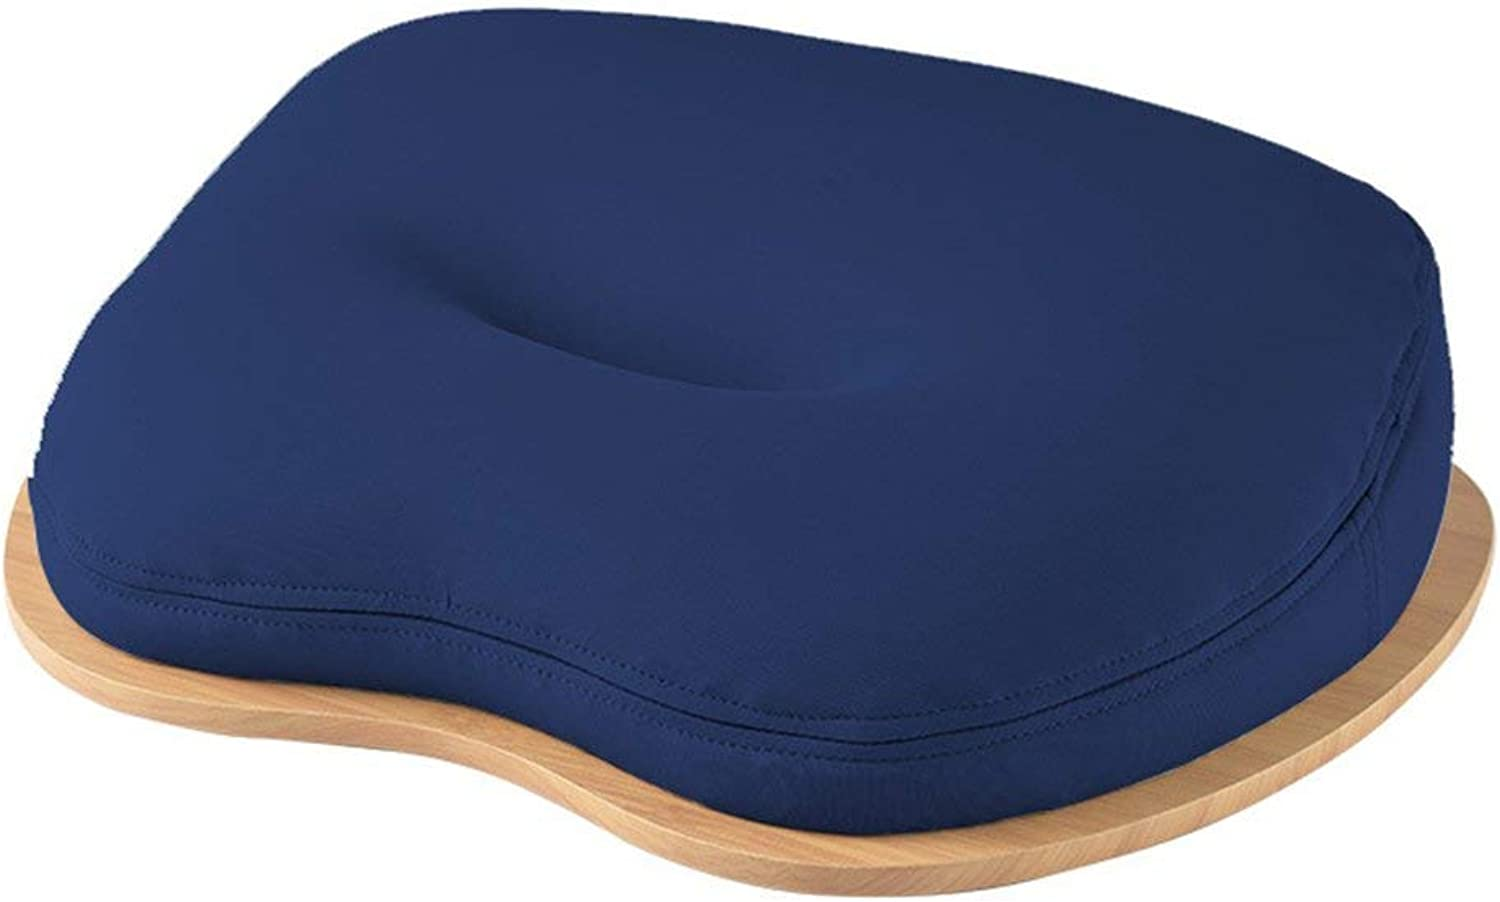 JZX Lazy Table- Computer Desk Three-in-One Multi-Function Notebook Pillow Mini Table